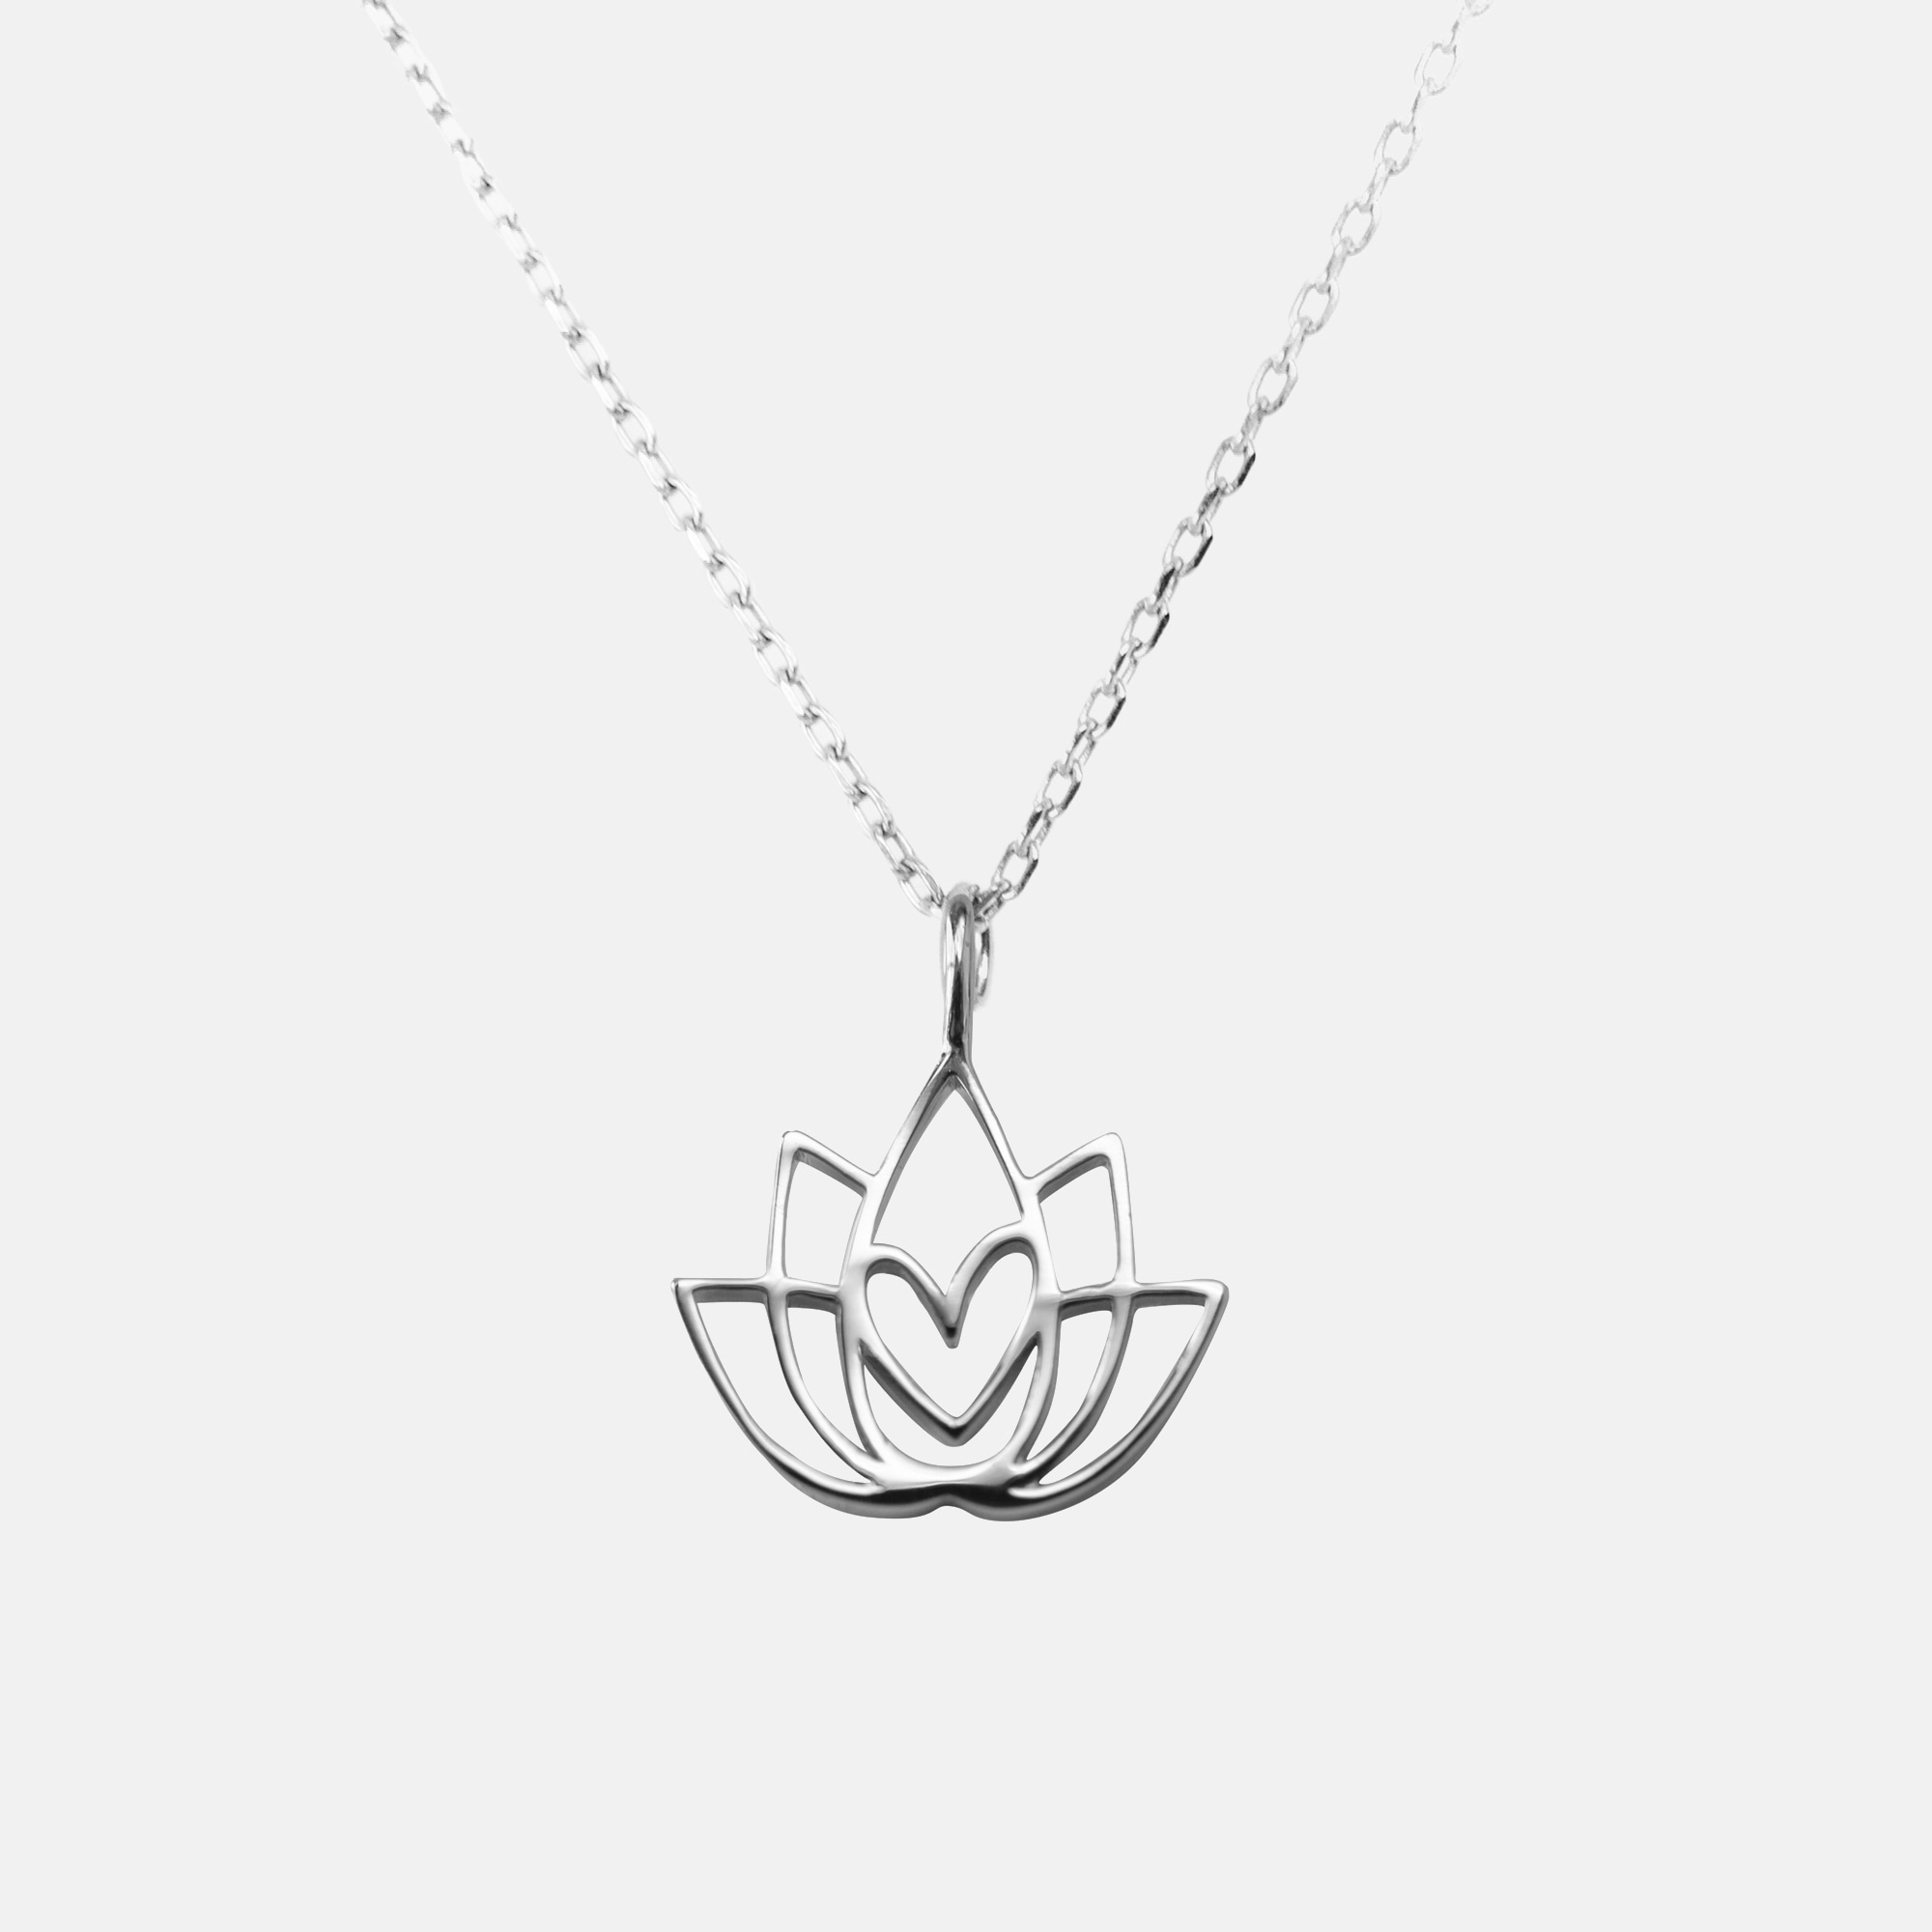 Lotus Flower Necklace Silver High Quality Statement Jewelry Jo